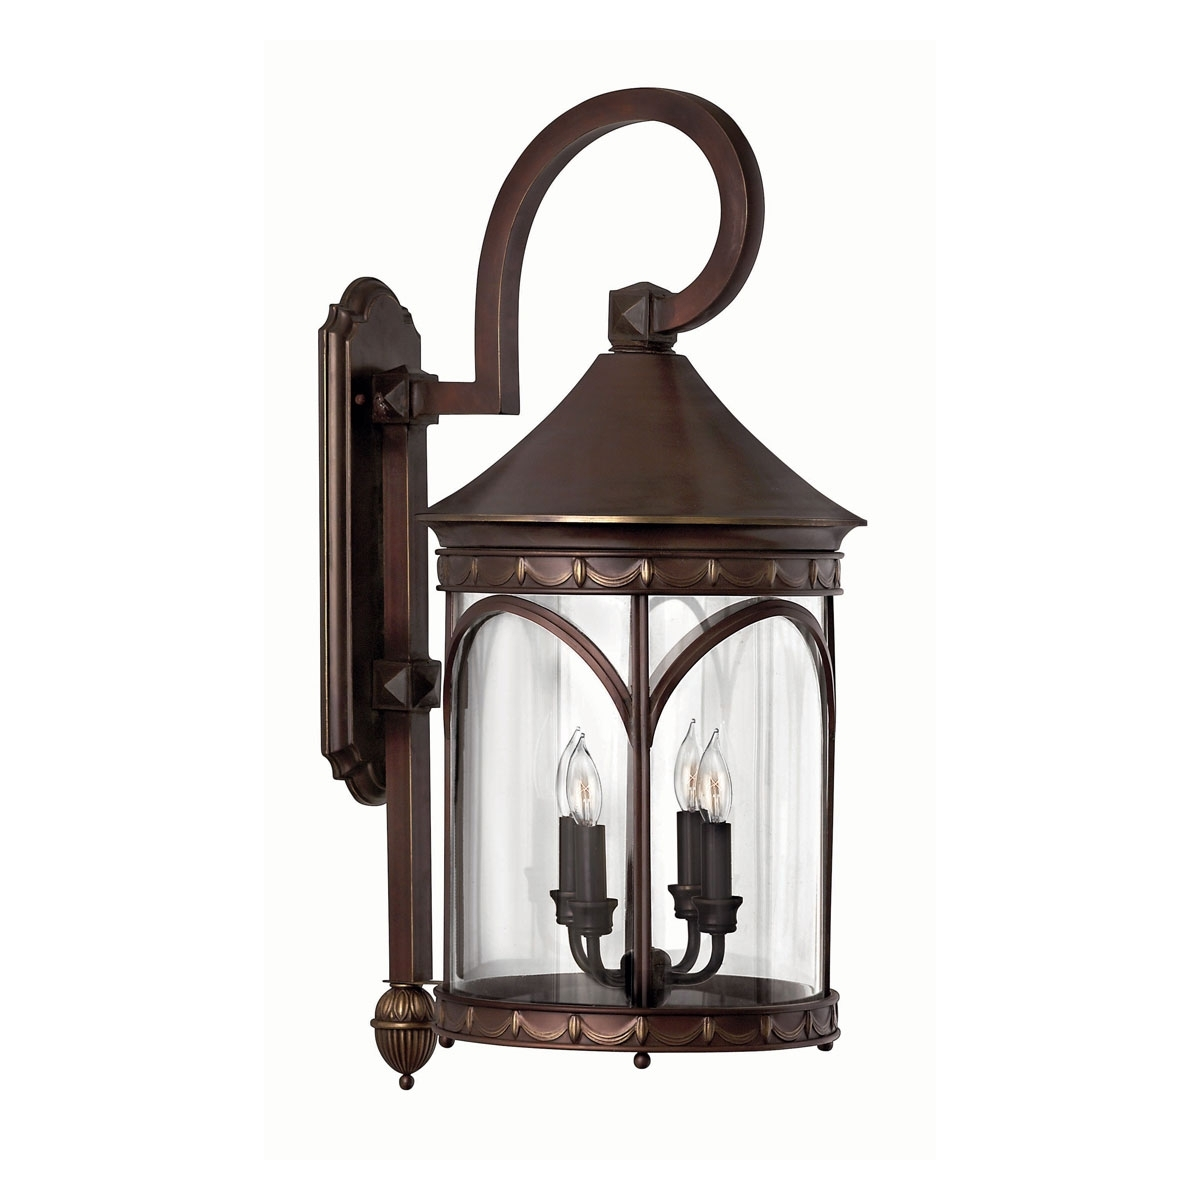 Hinkley Outdoor Ceiling Lights Regarding Latest 2315Cb – Large Wall Outdoor Light, 30 Inch, Lucerne Copper Bronze (Gallery 18 of 20)